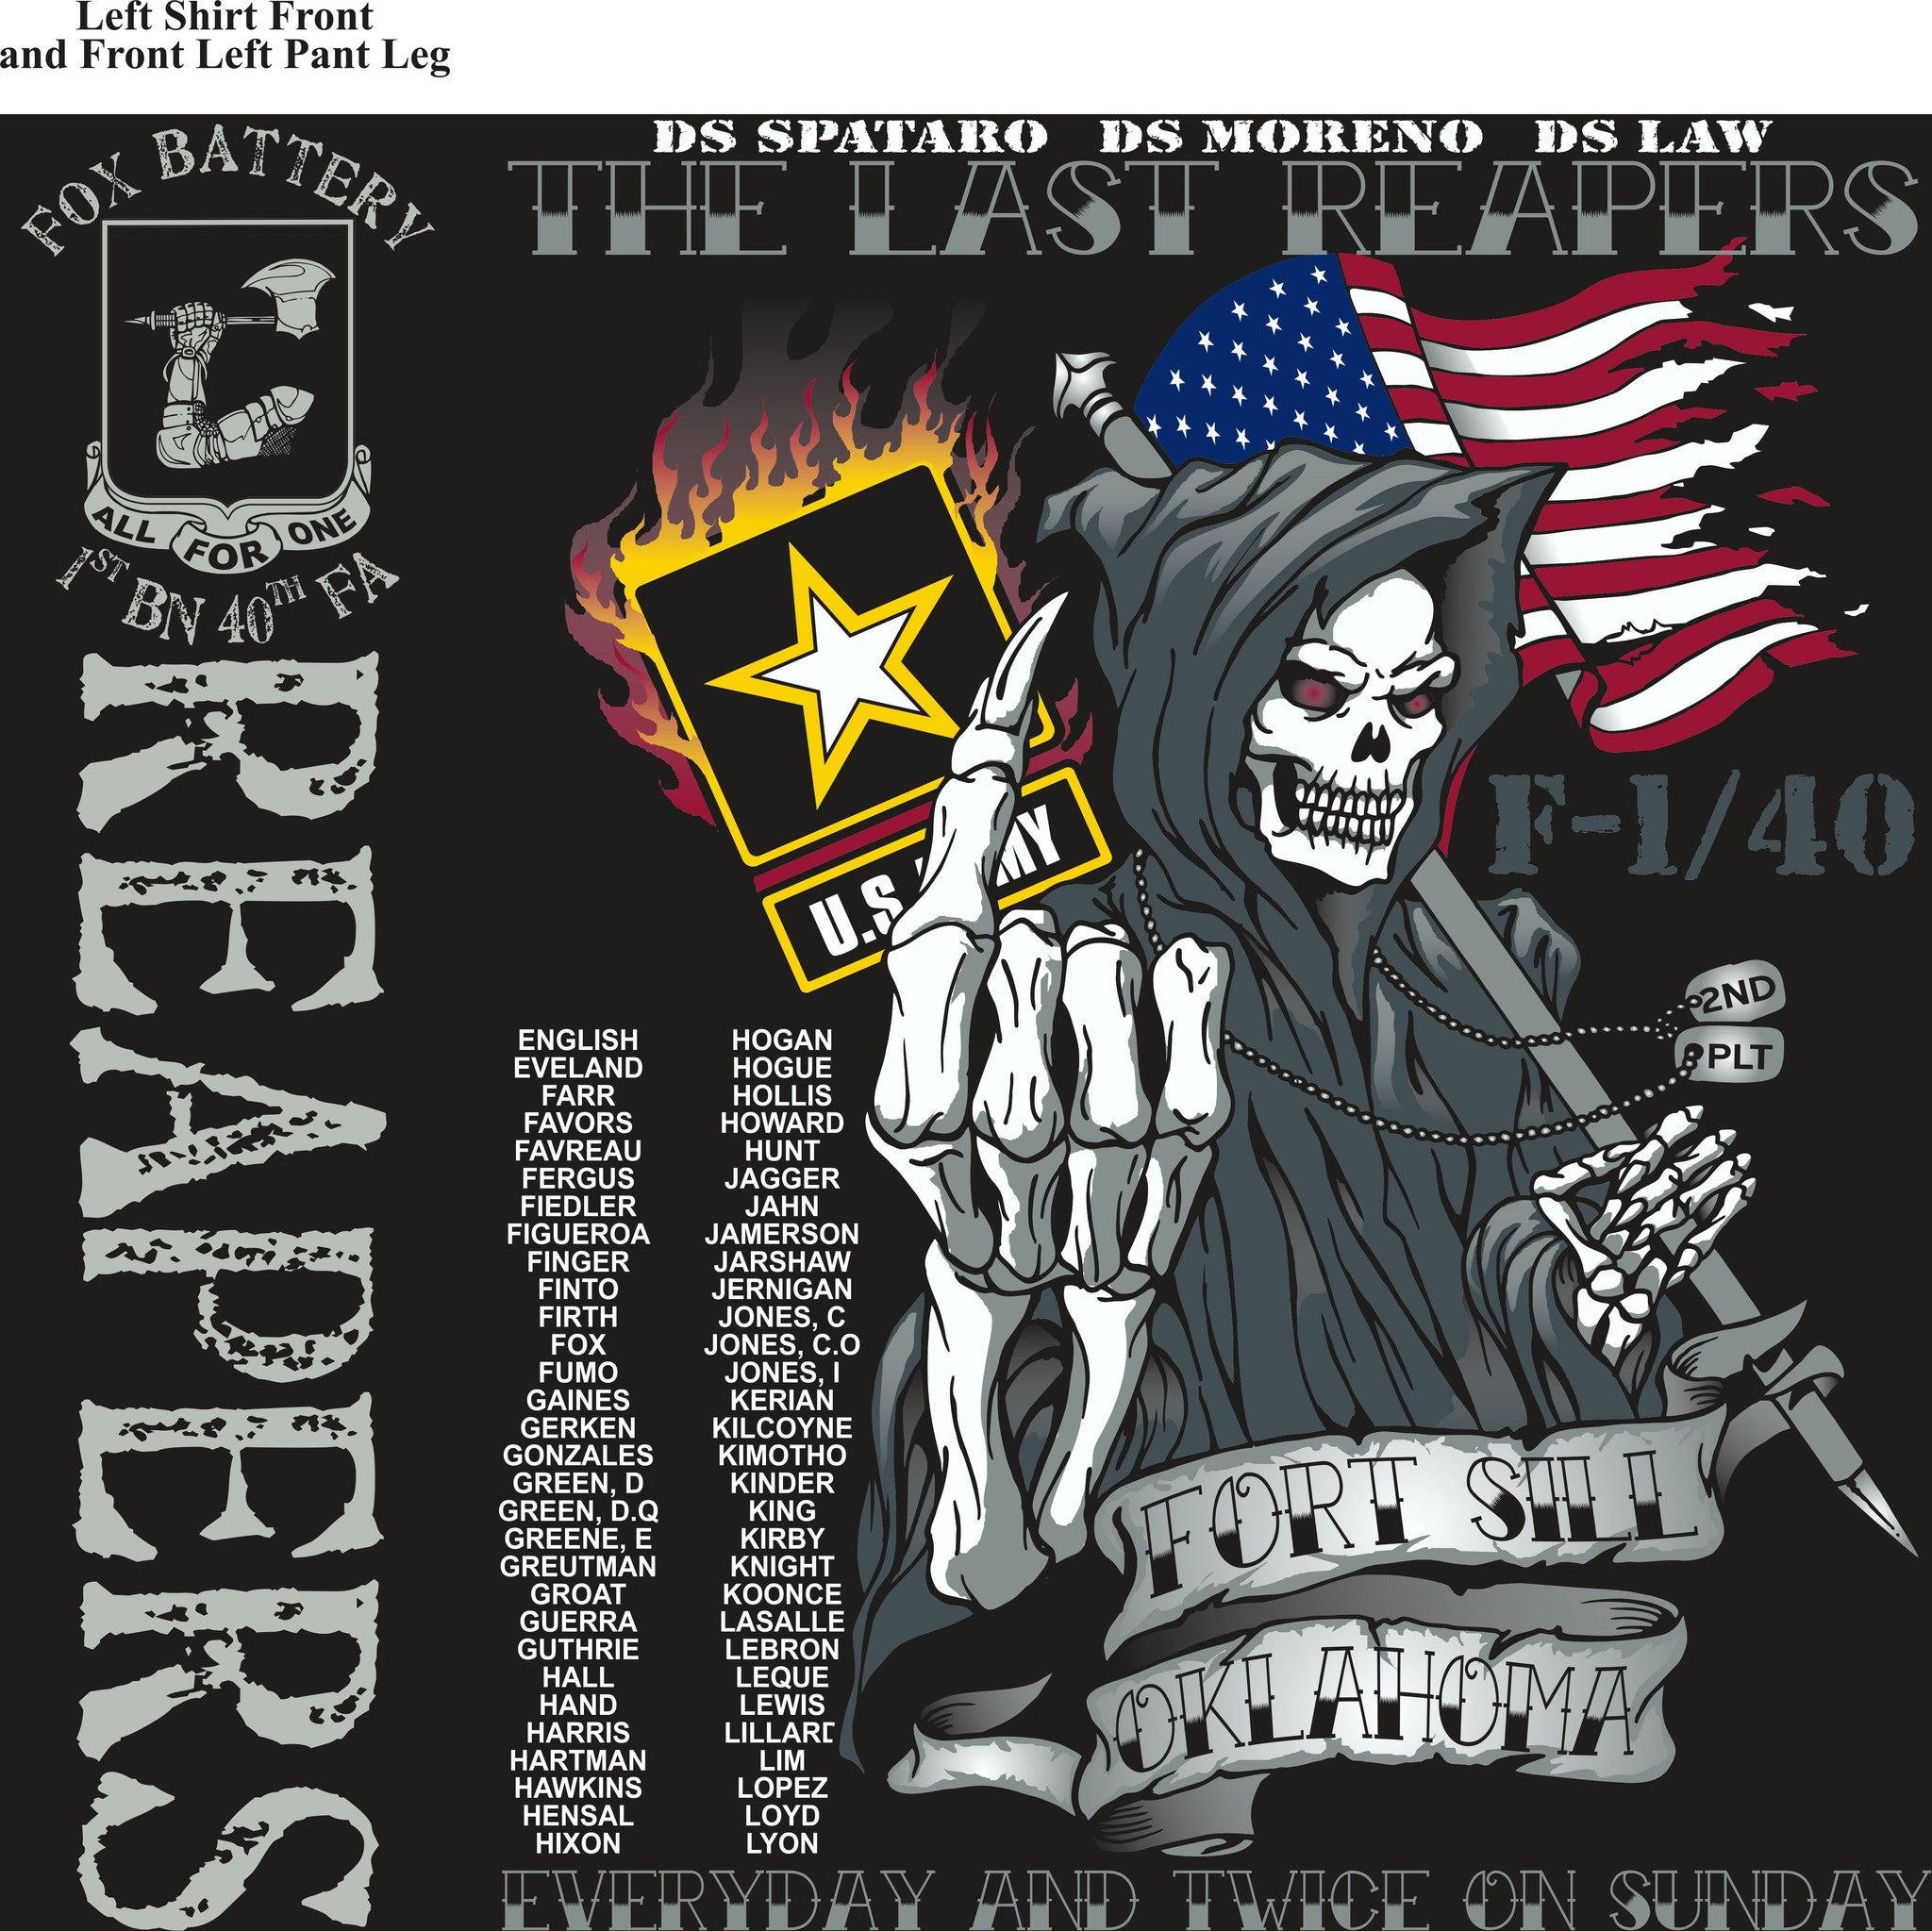 PLATOON SHIRTS (2nd generation print) FOX 1st 40th REAPERS AUG 2016